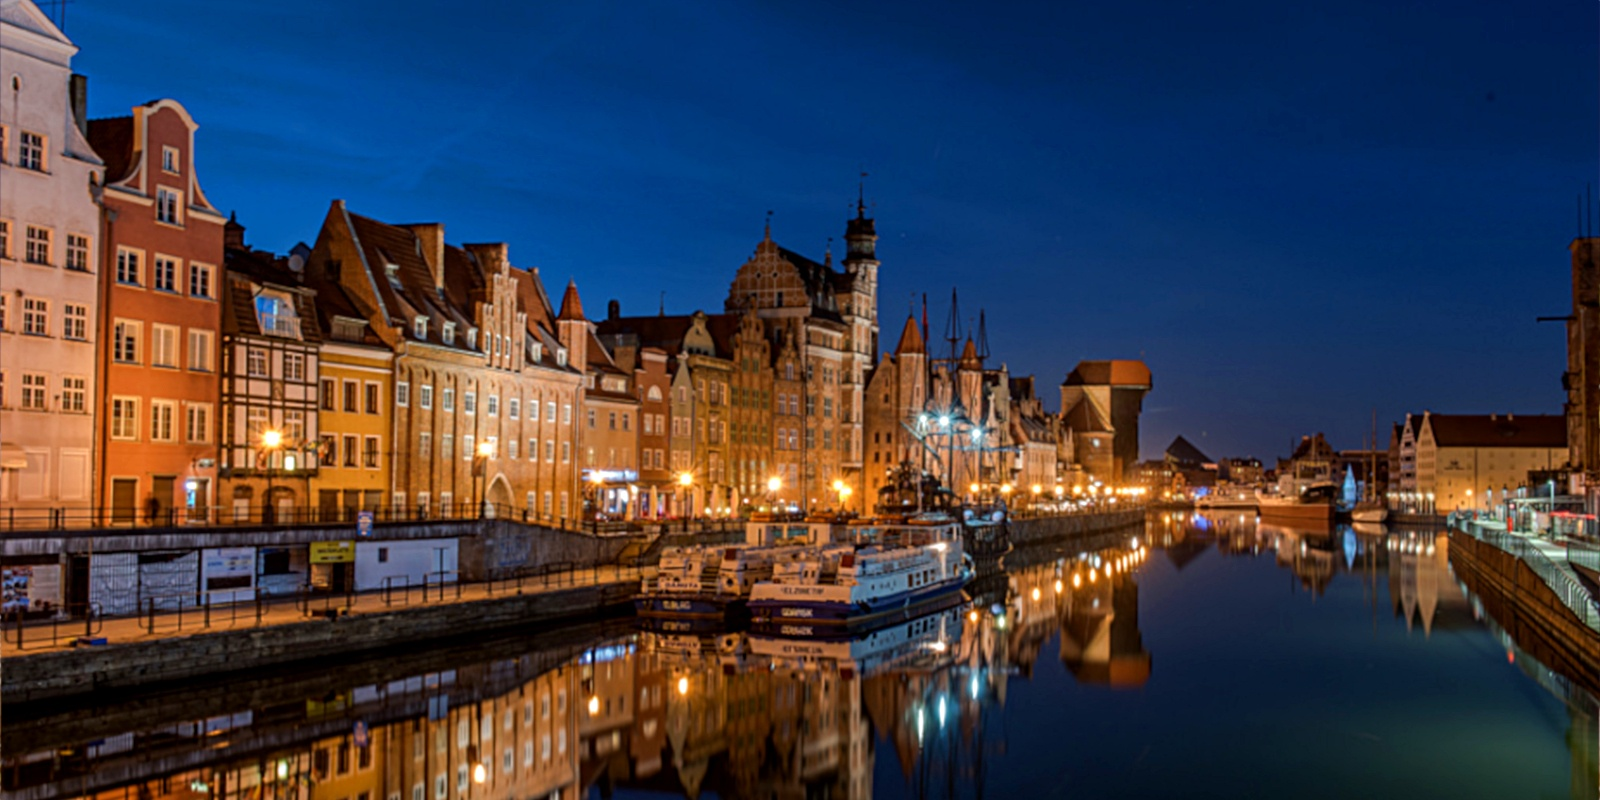 Gdańsk is characterized by its 14th century architectural style, pictured here along the Motława riverside.